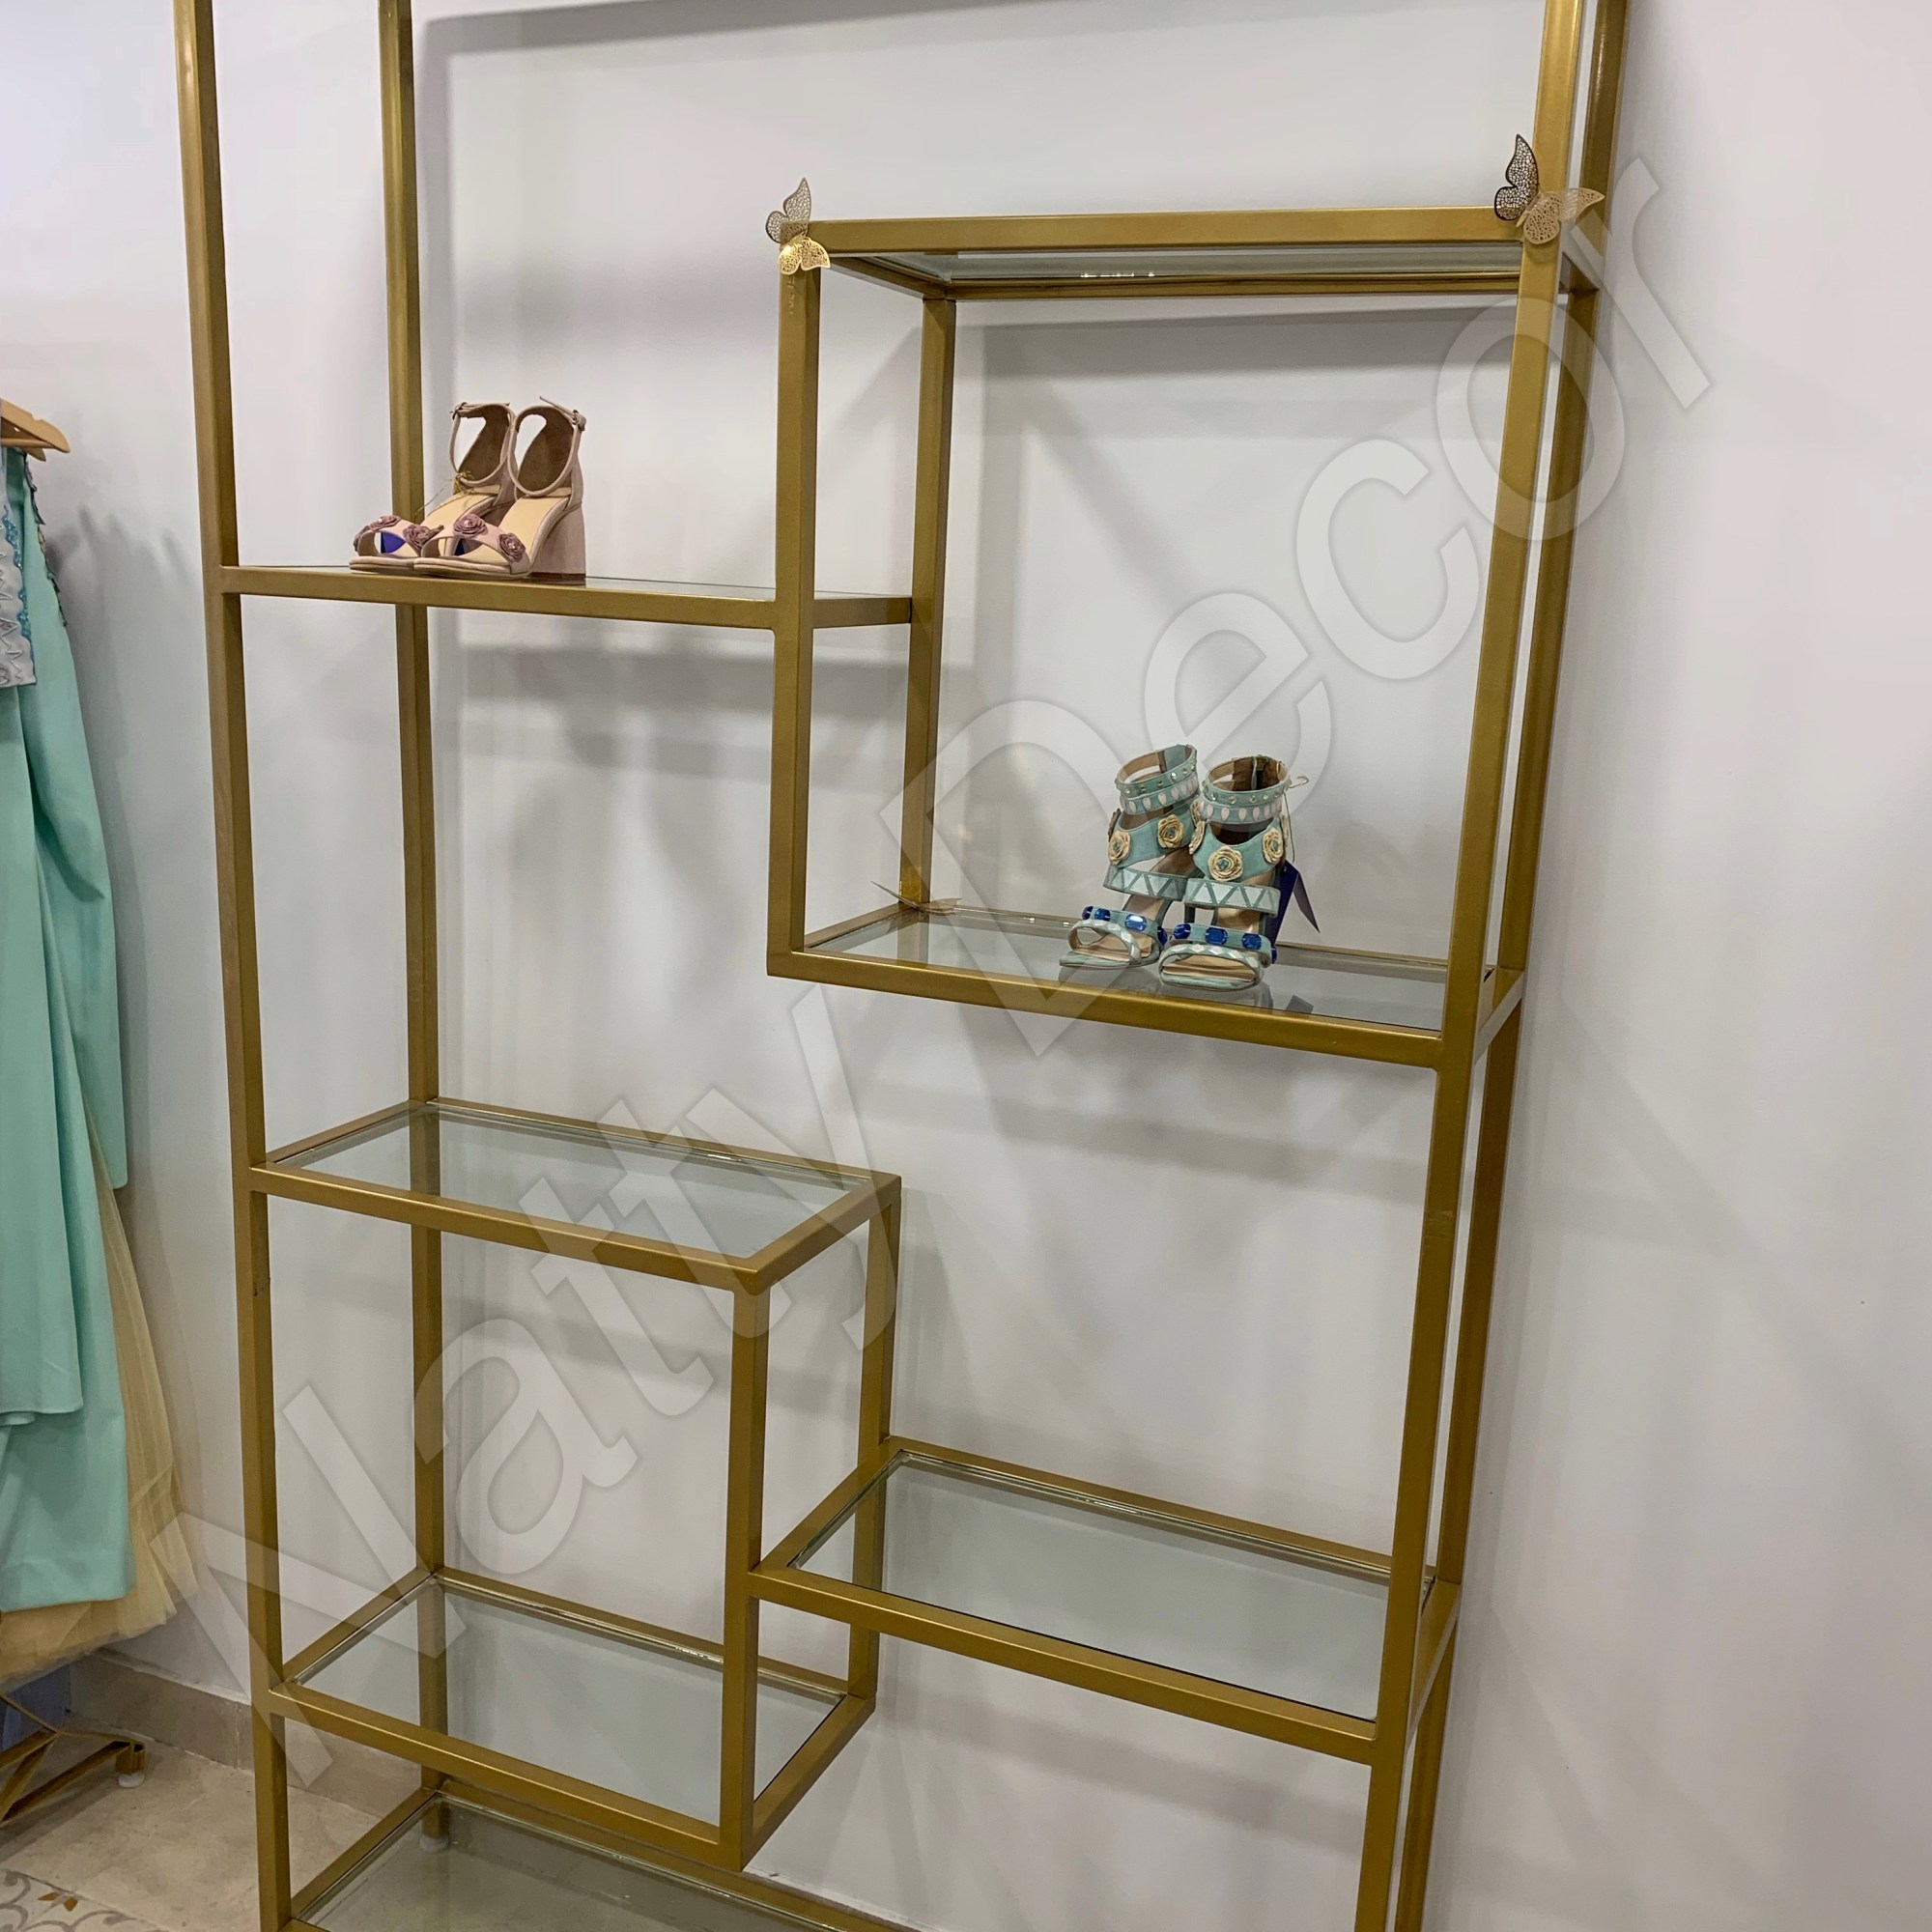 A tall golden glass rack for displaying designer concepts in stores